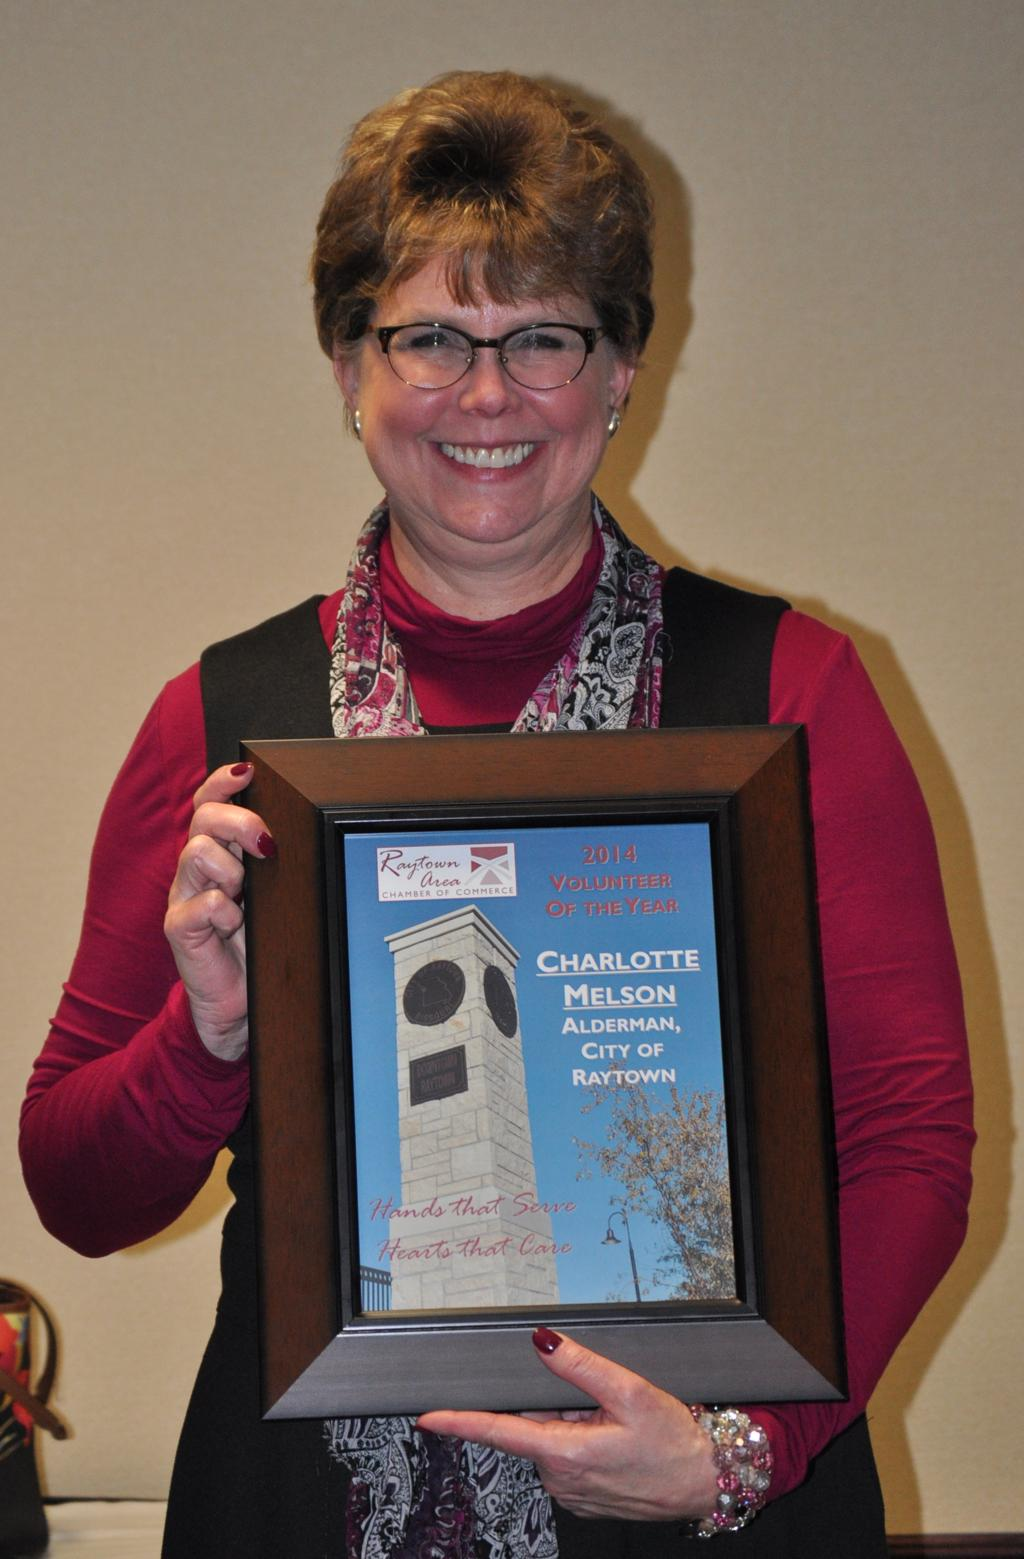 2014_Volunteer_of_the_Year__Charlotte_Melson1024